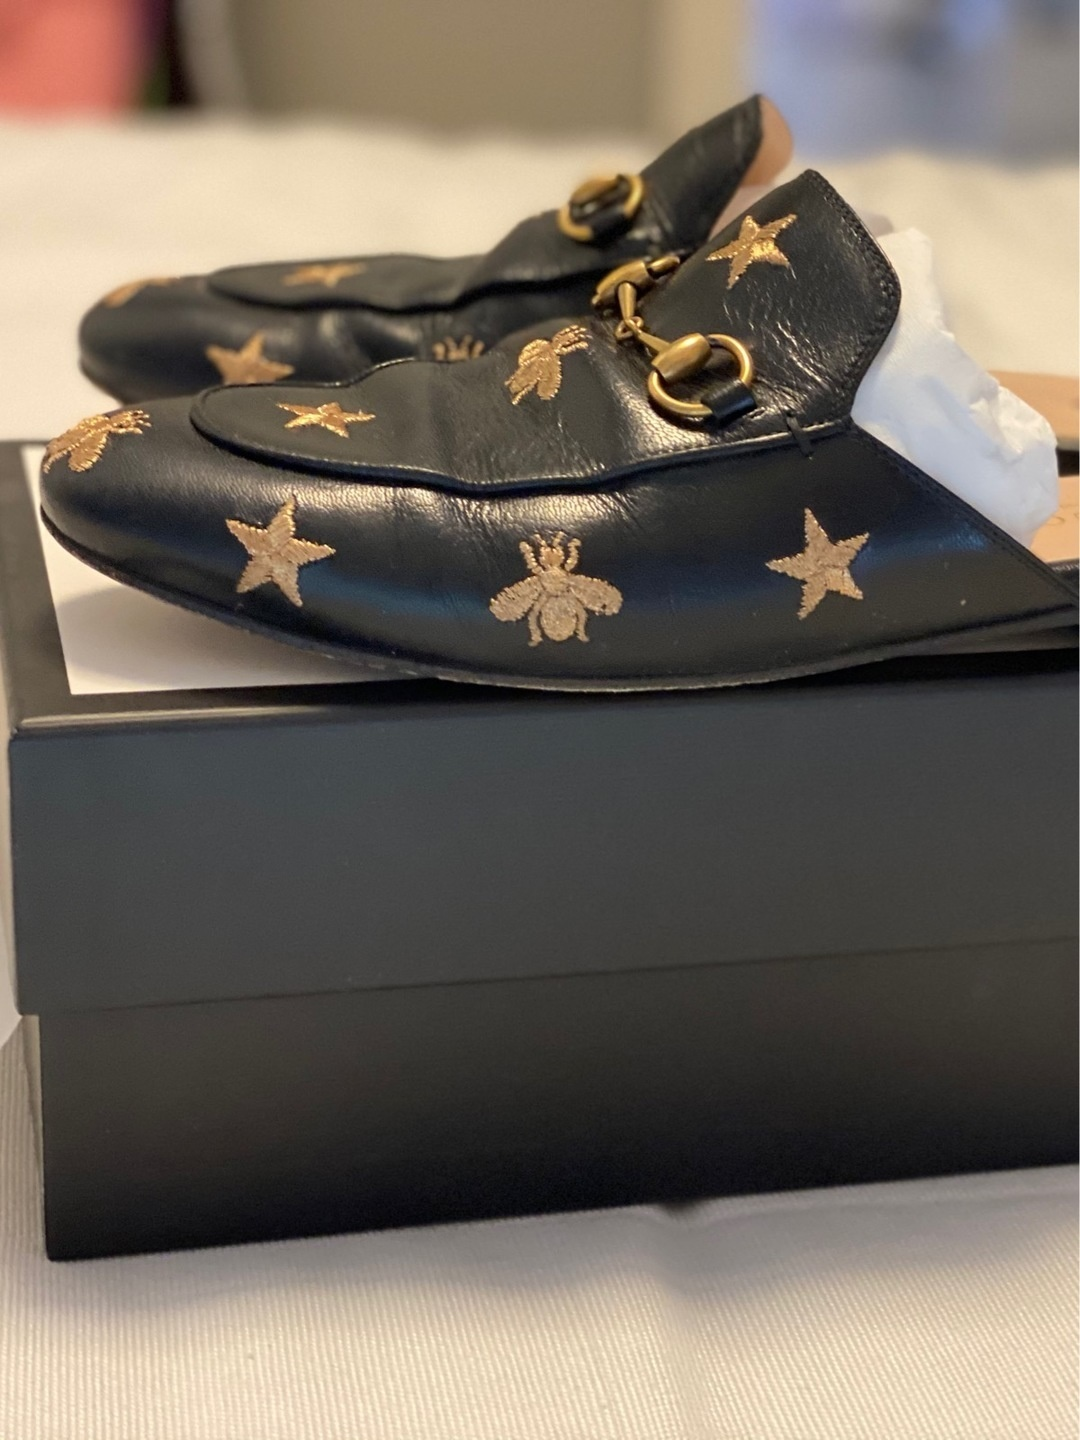 Women's sandals & slippers - GUCCI photo 1